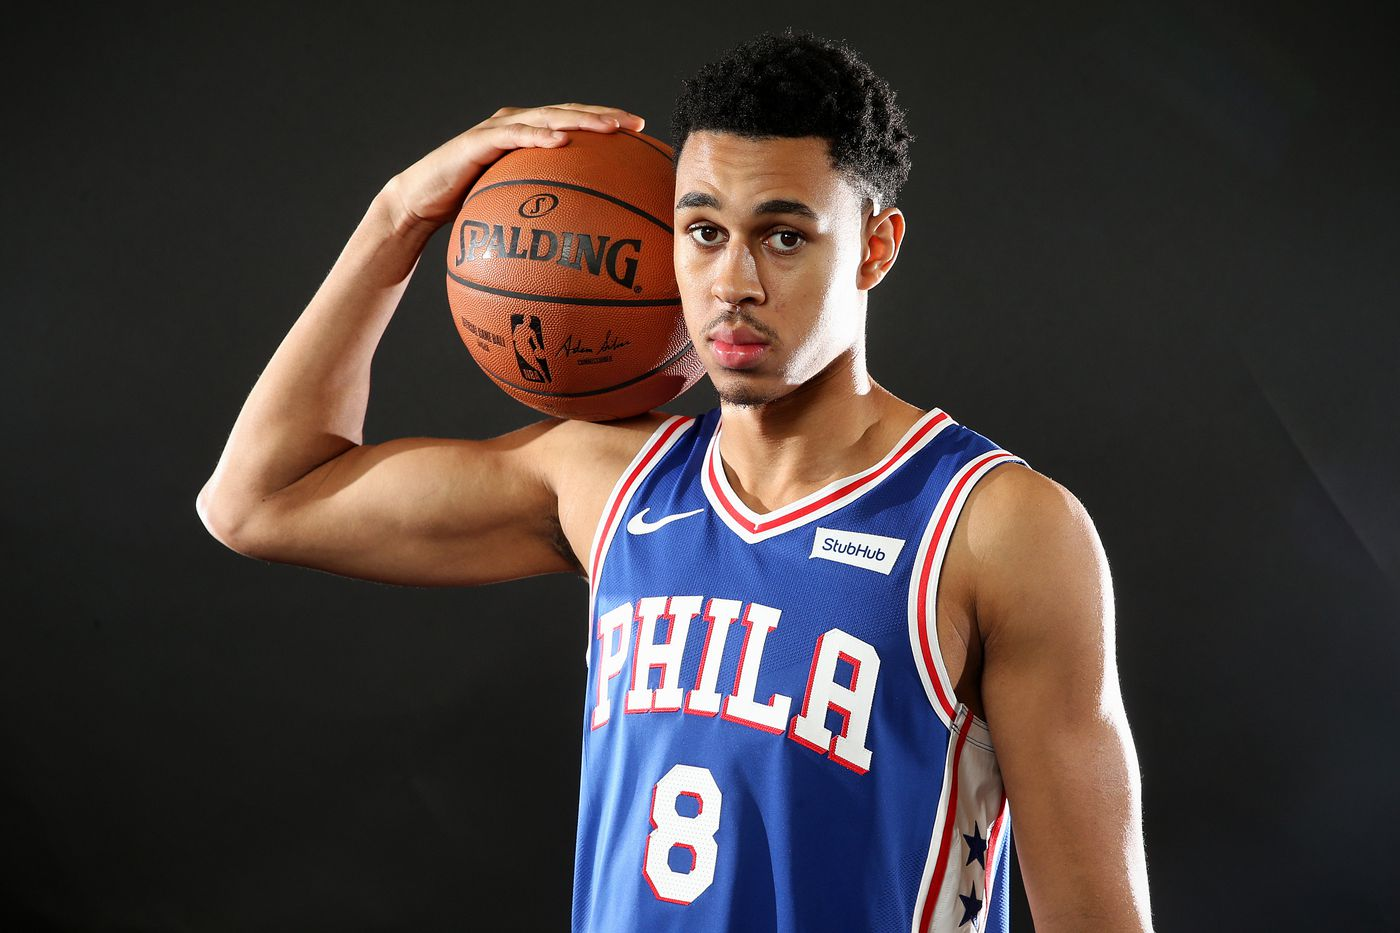 Sixers: Zhaire Smith will not return in 2018 due to 'complications' from allergic reaction